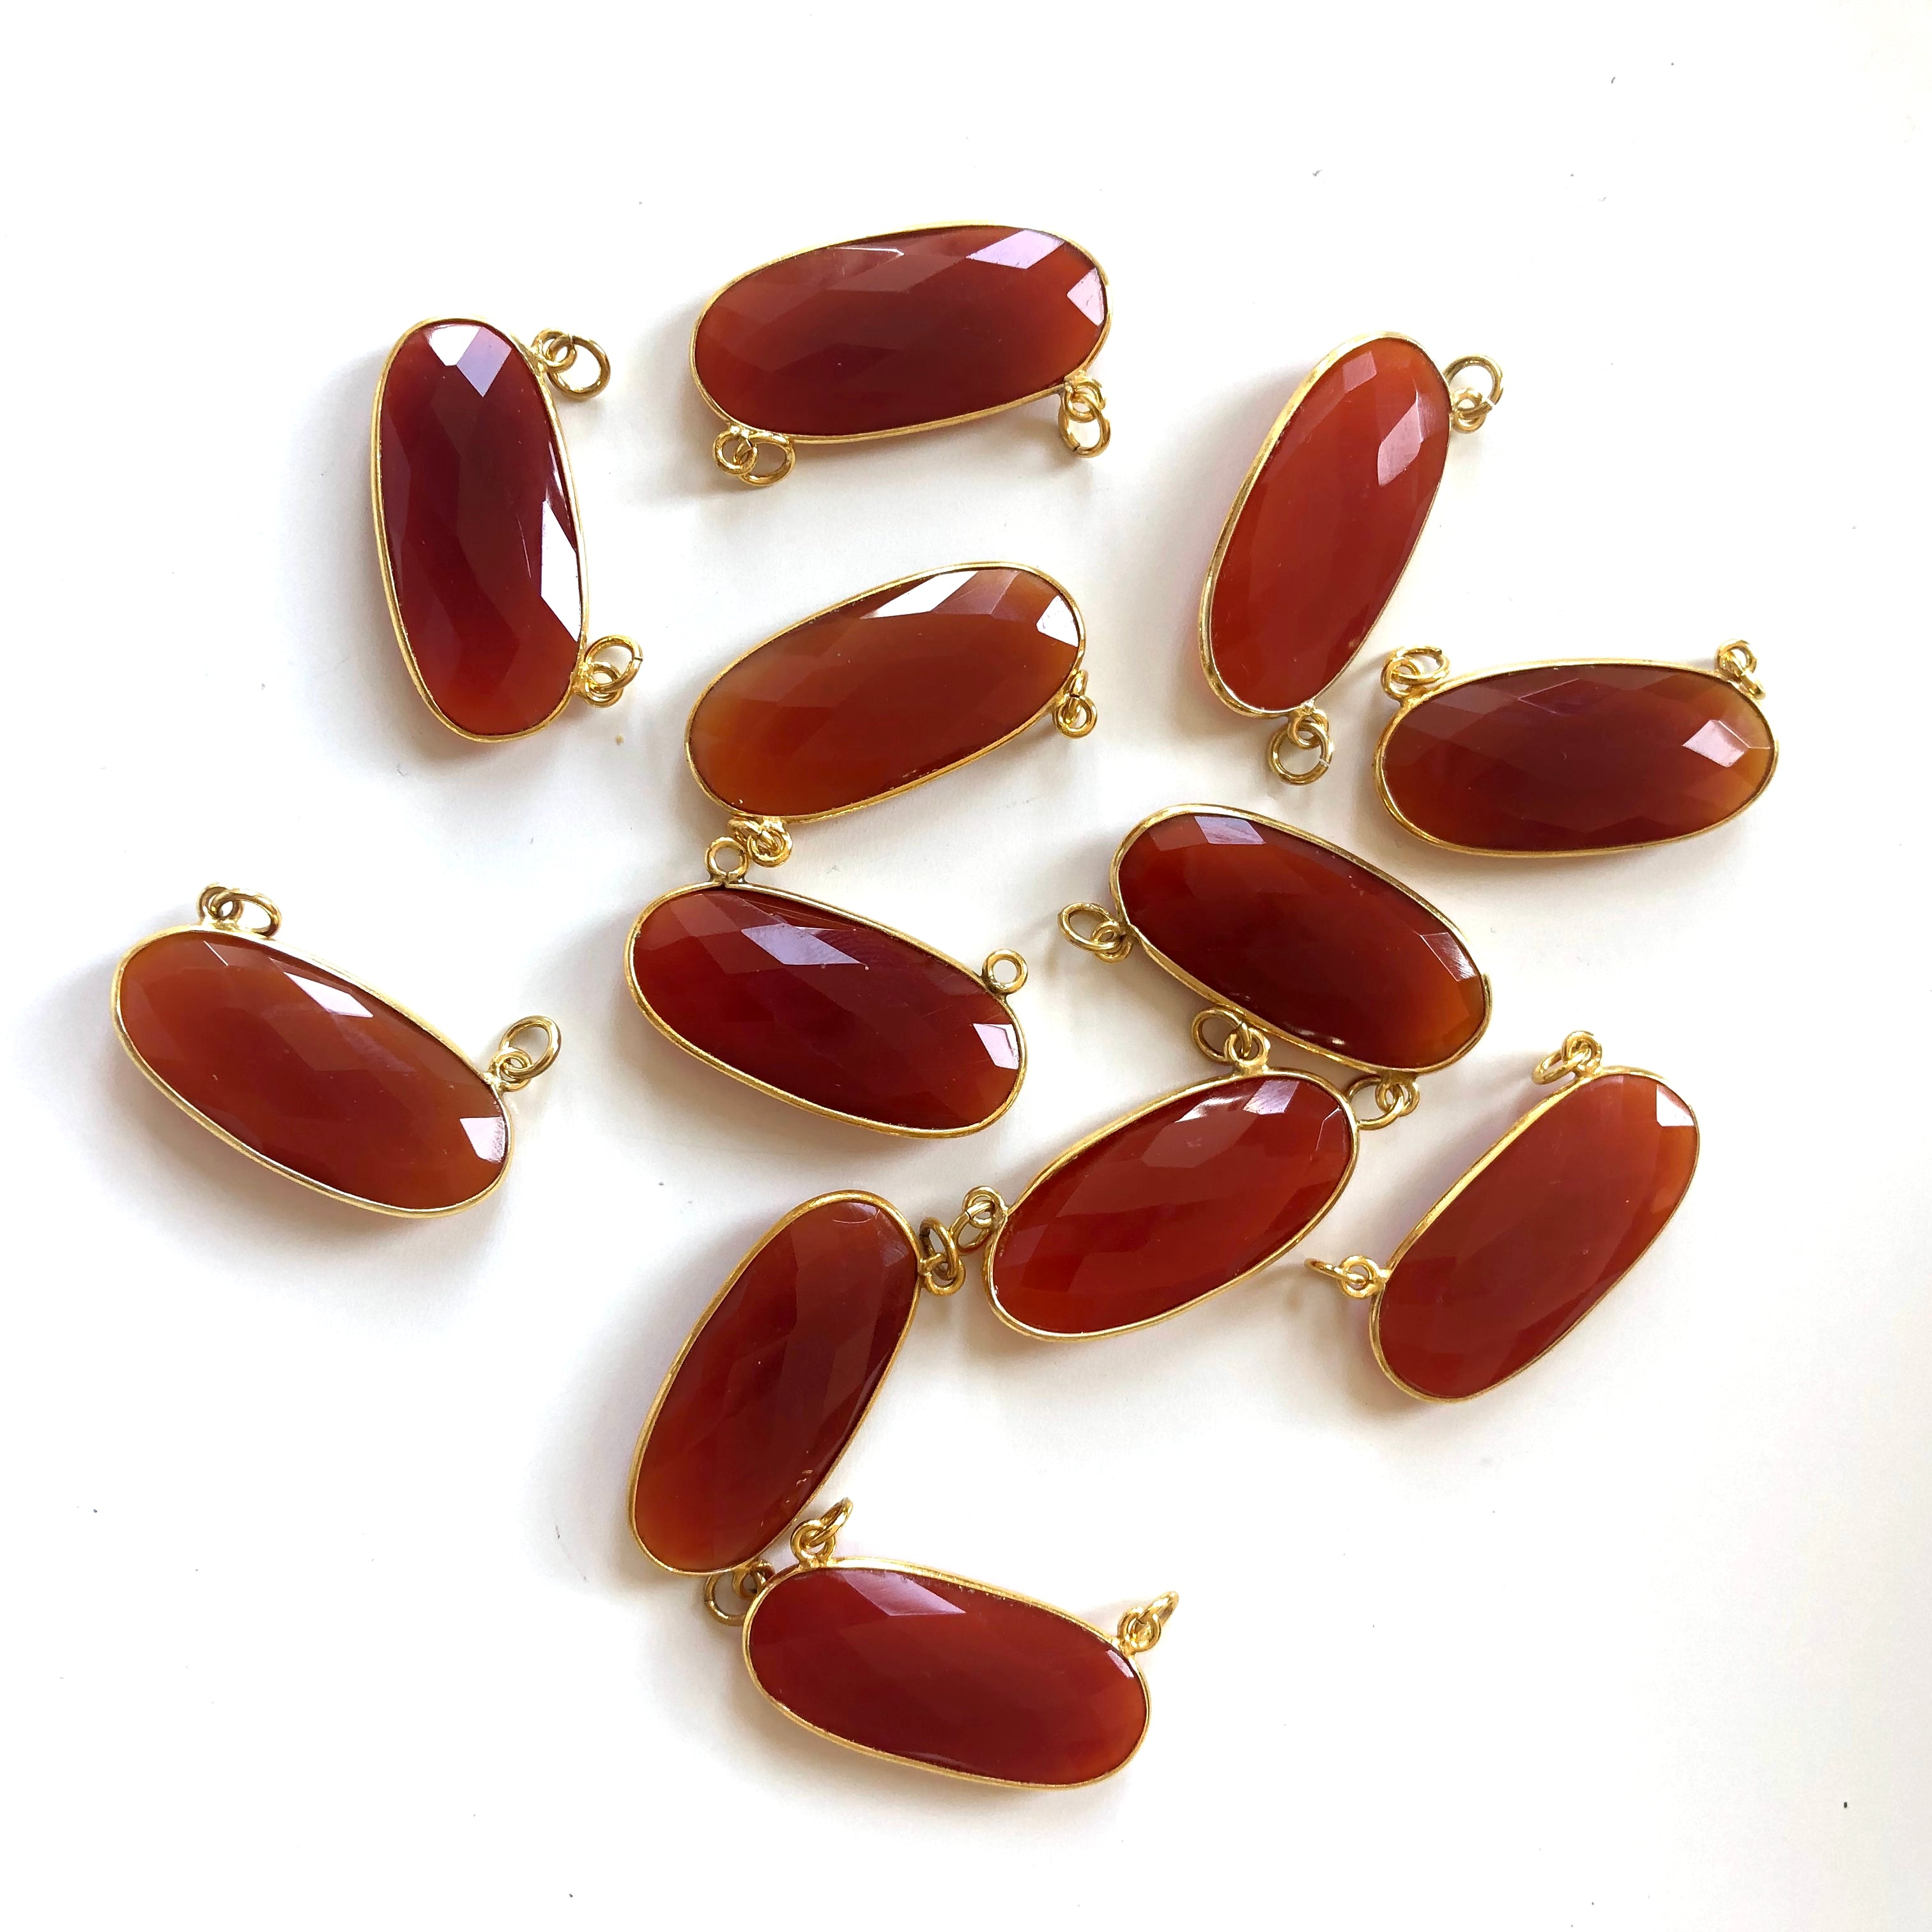 6 Pieces - Gold Plated over Silver Bezel Pendants Red Carnelian Oval